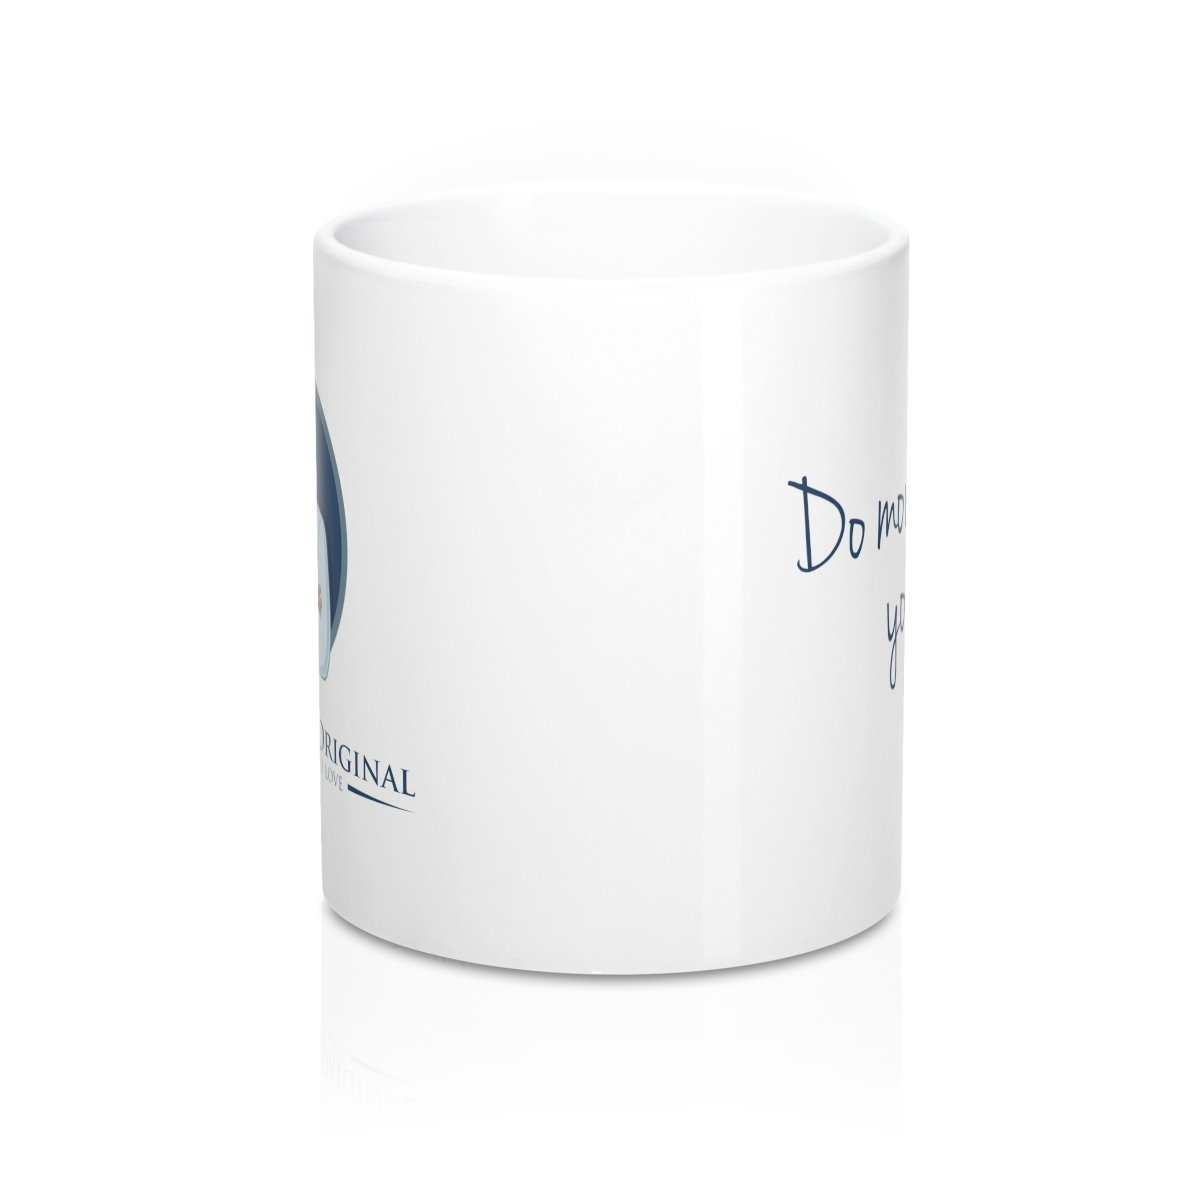 "Dr. Frederick's Original 11oz Mug - ""Do More of What You Love"" Mug Printify"